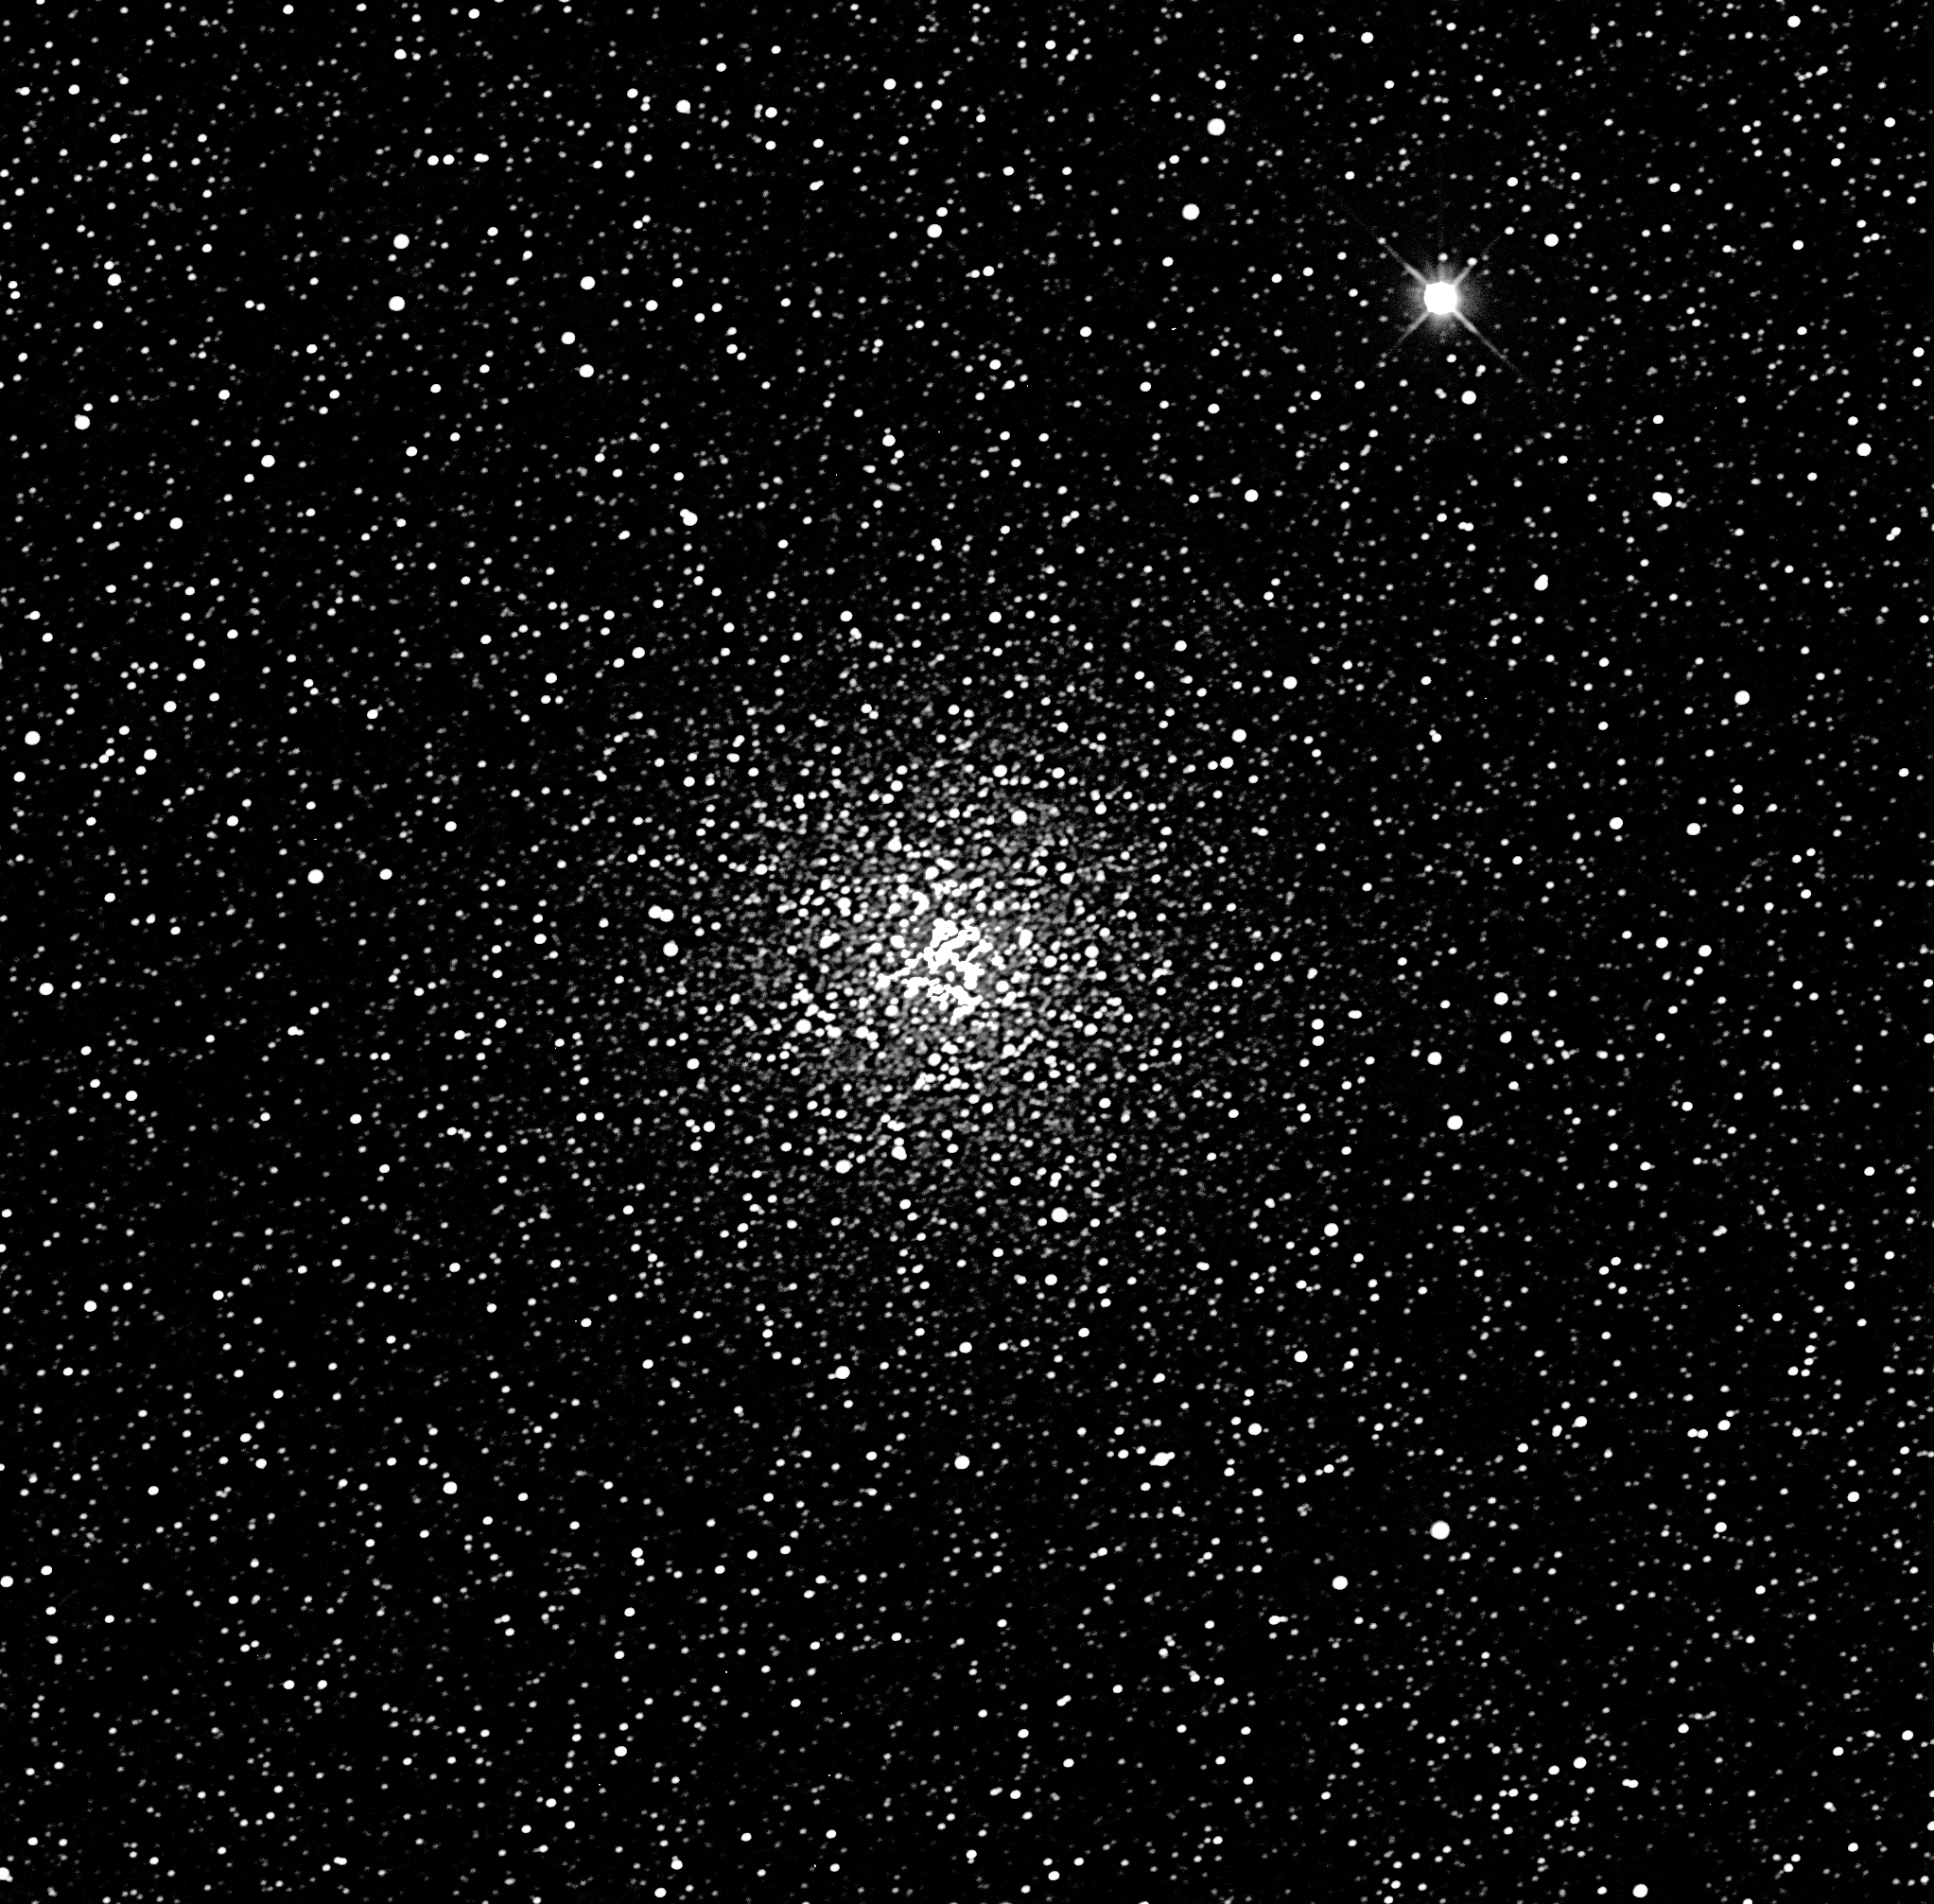 20190903 M69 Globular cluster R filter 30s 2m Faaulkes South DPlr